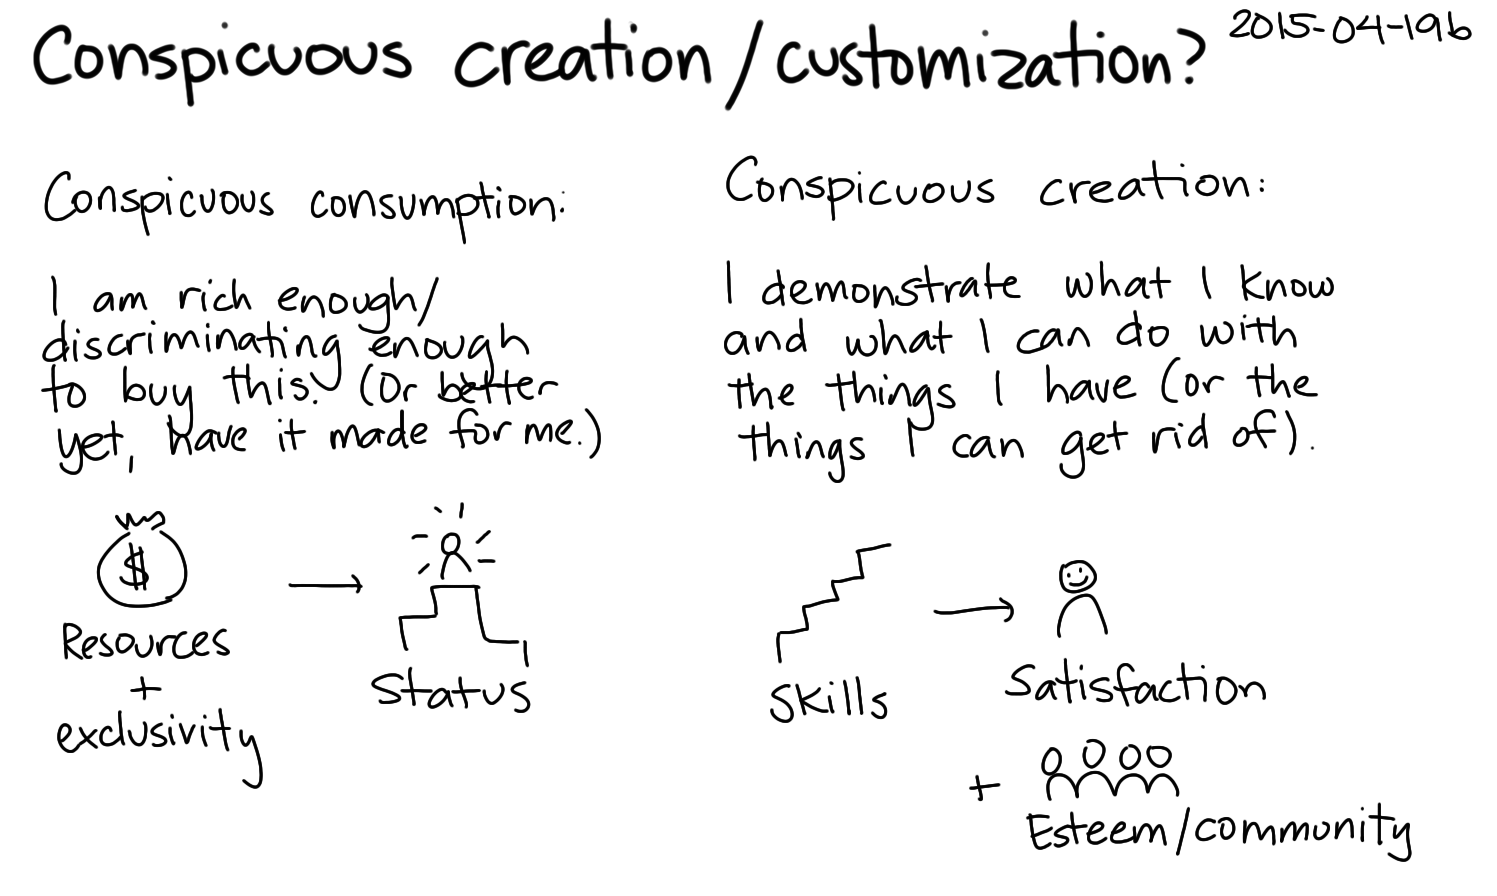 2015-04-19b Conspicuous creation or customization -- index card #creation #making.png